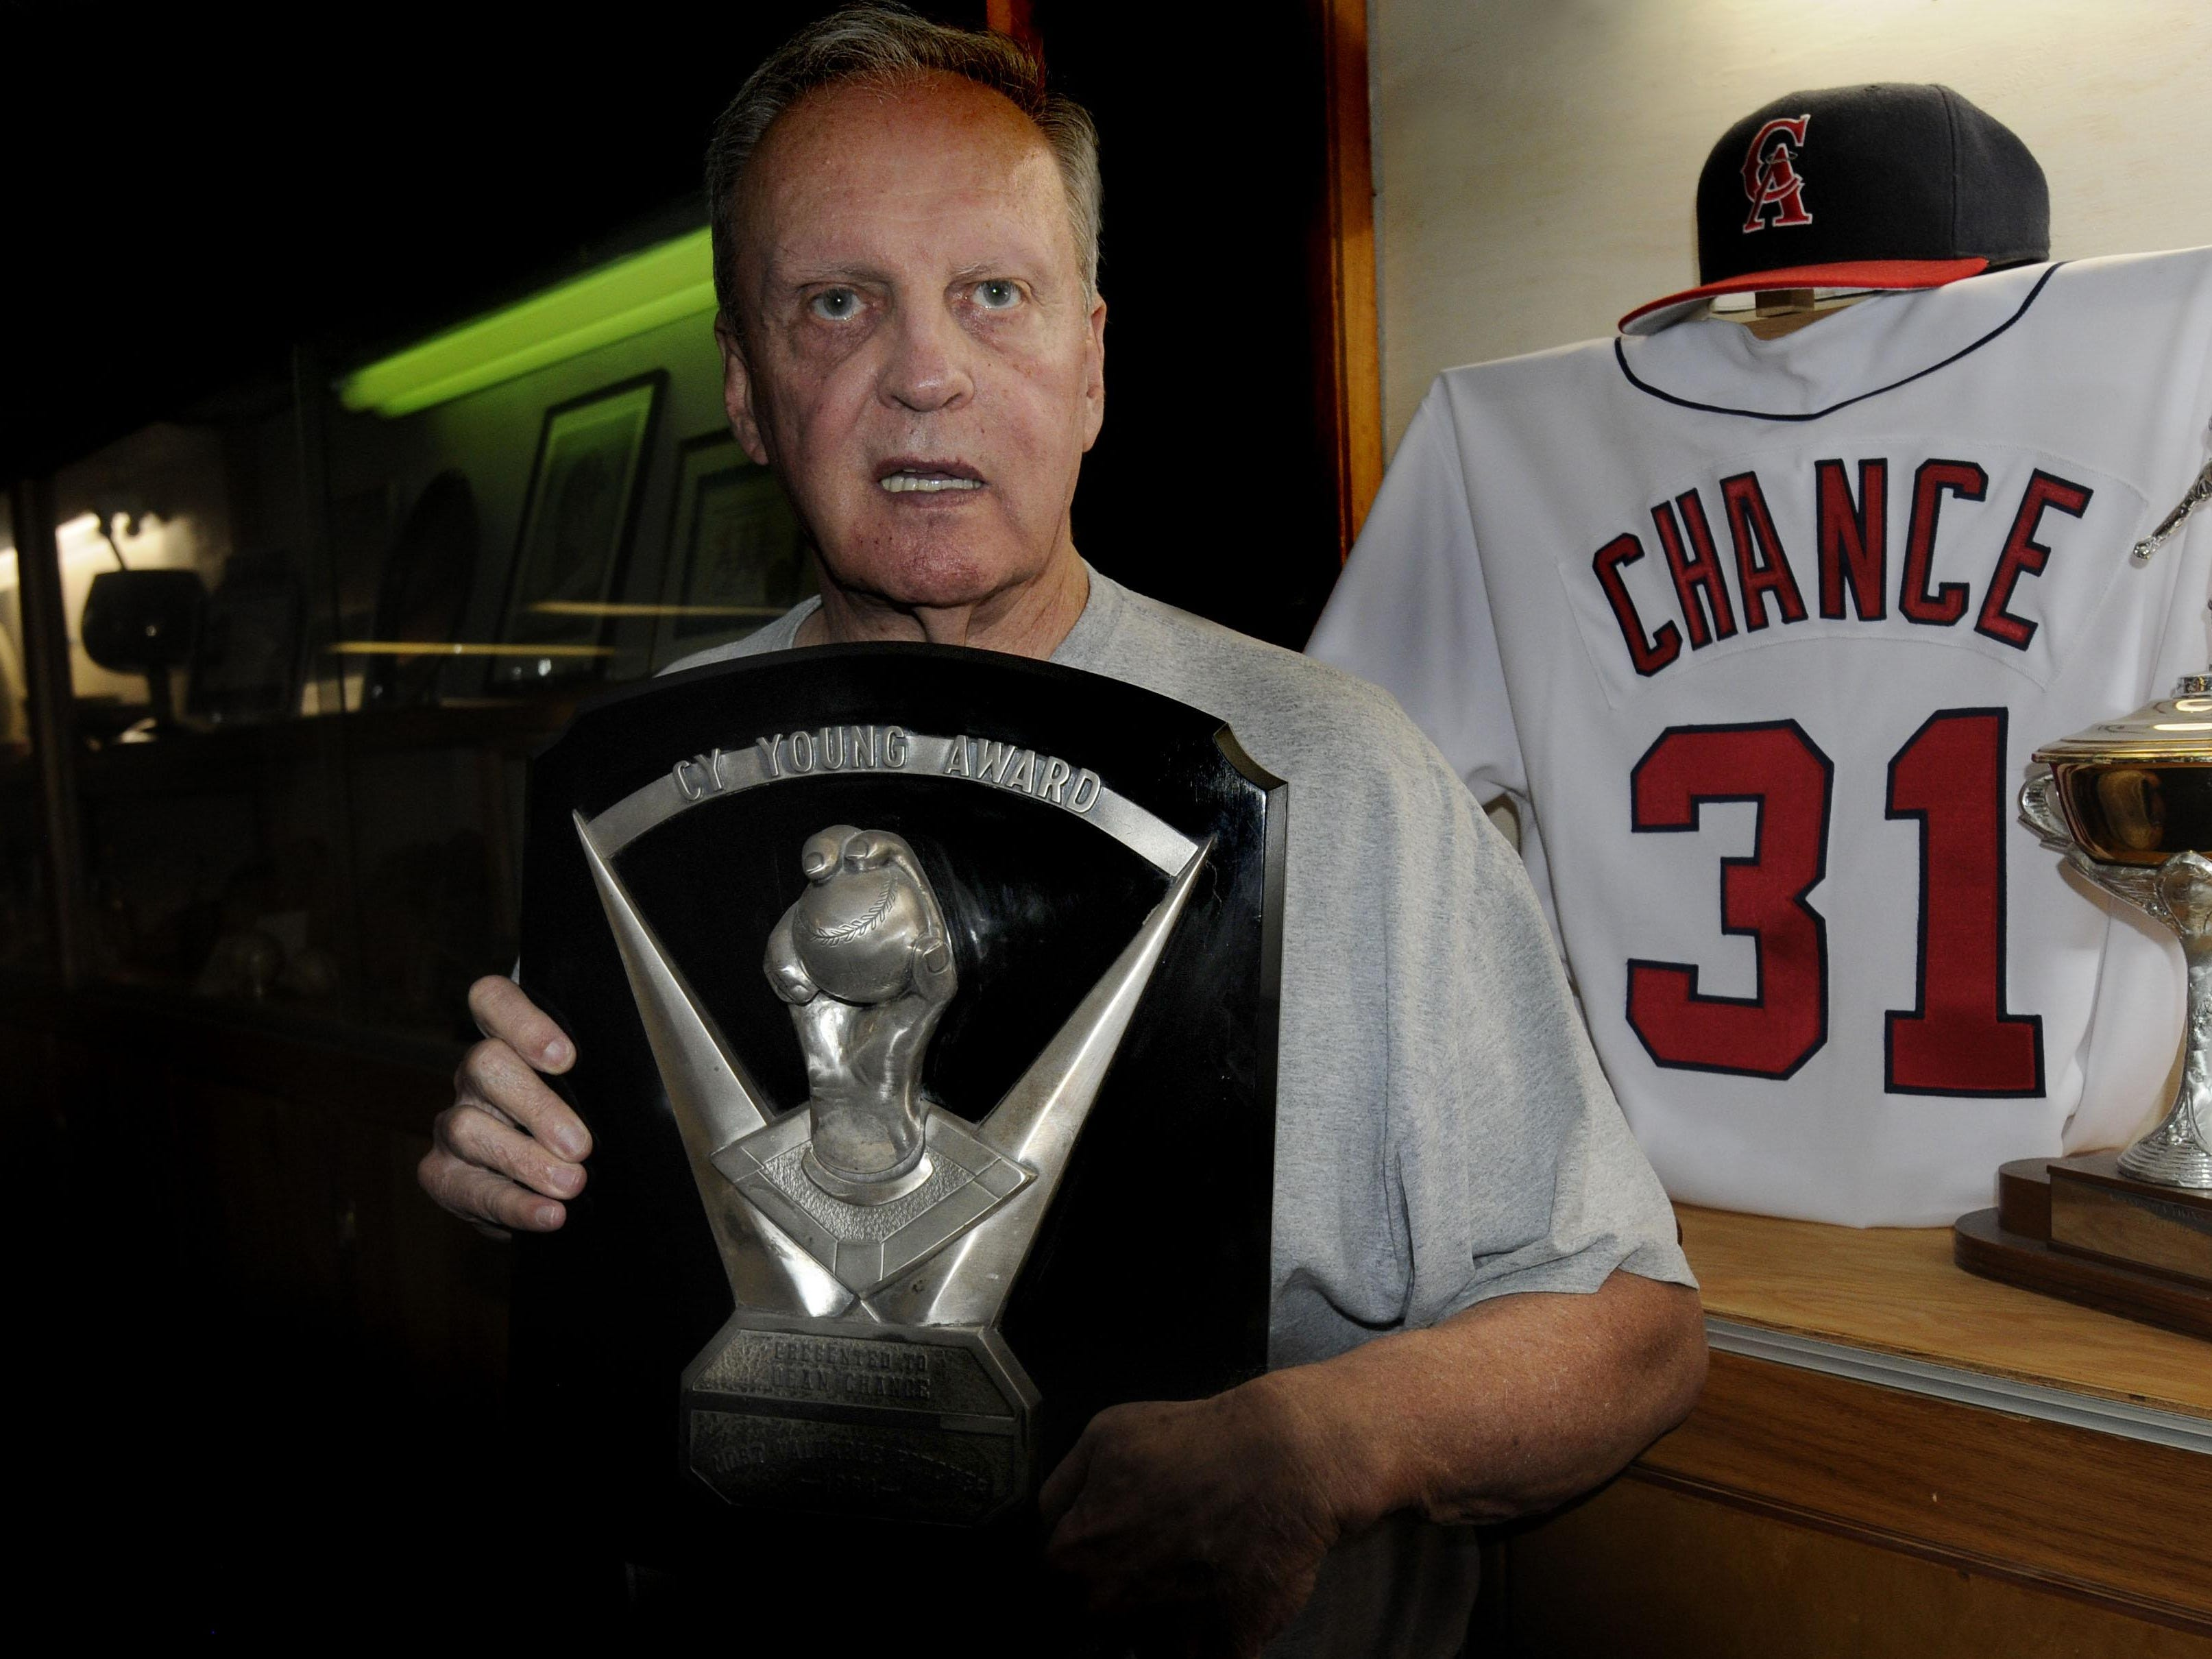 Dean Chance with the 1964 Cy Young Award he won with the Los Angeles Angels.